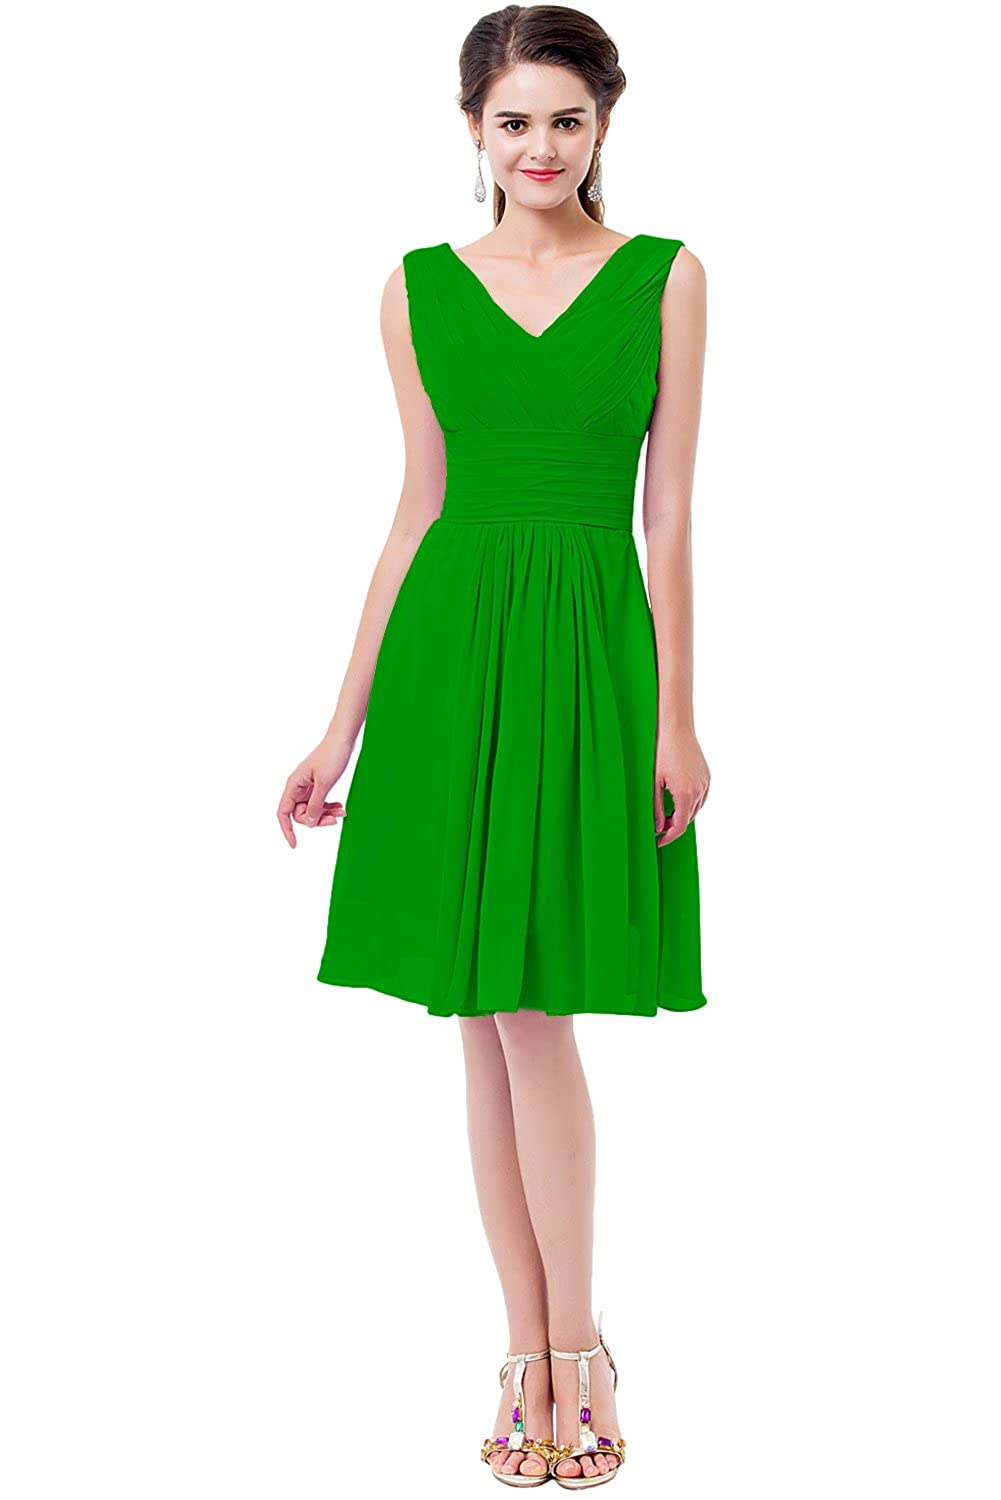 DressyMe Womens A-Line Bridesmaid Dresses Short Double V-Neck: Amazon.co.uk: Clothing